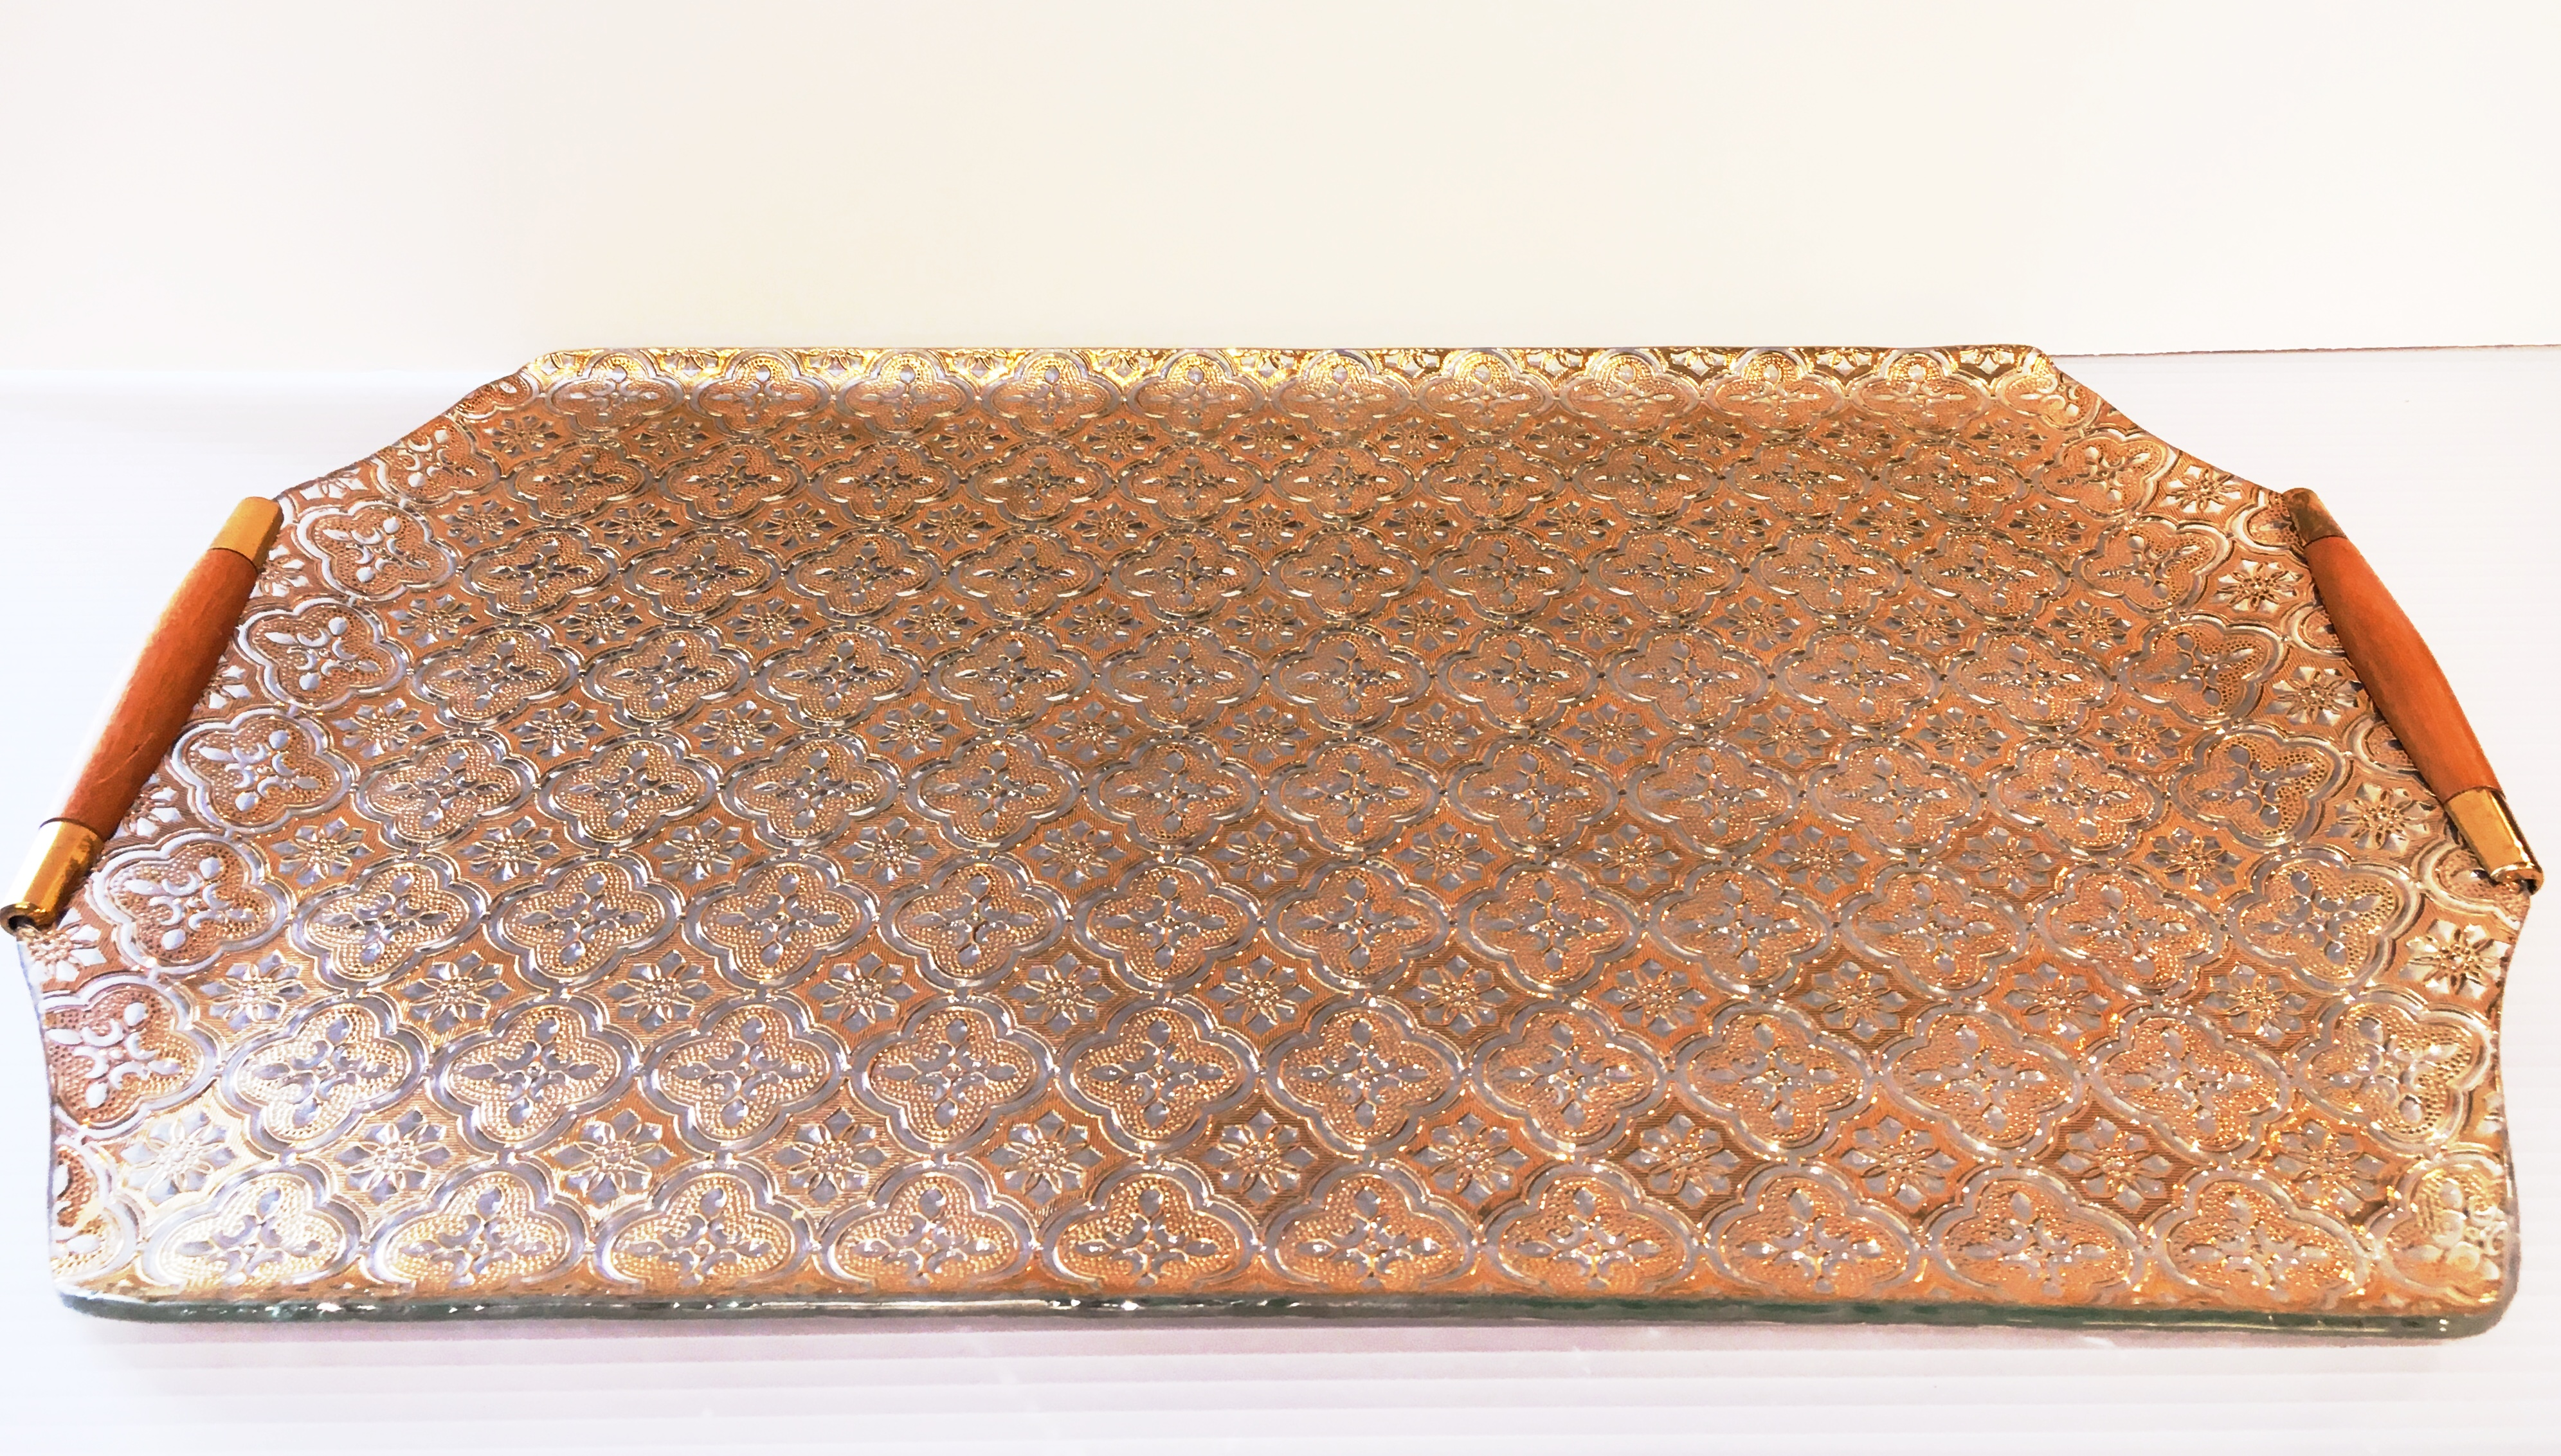 Vintage Georges Briard Embossed Glass & Gold Drinks Tray with Walnut Handles